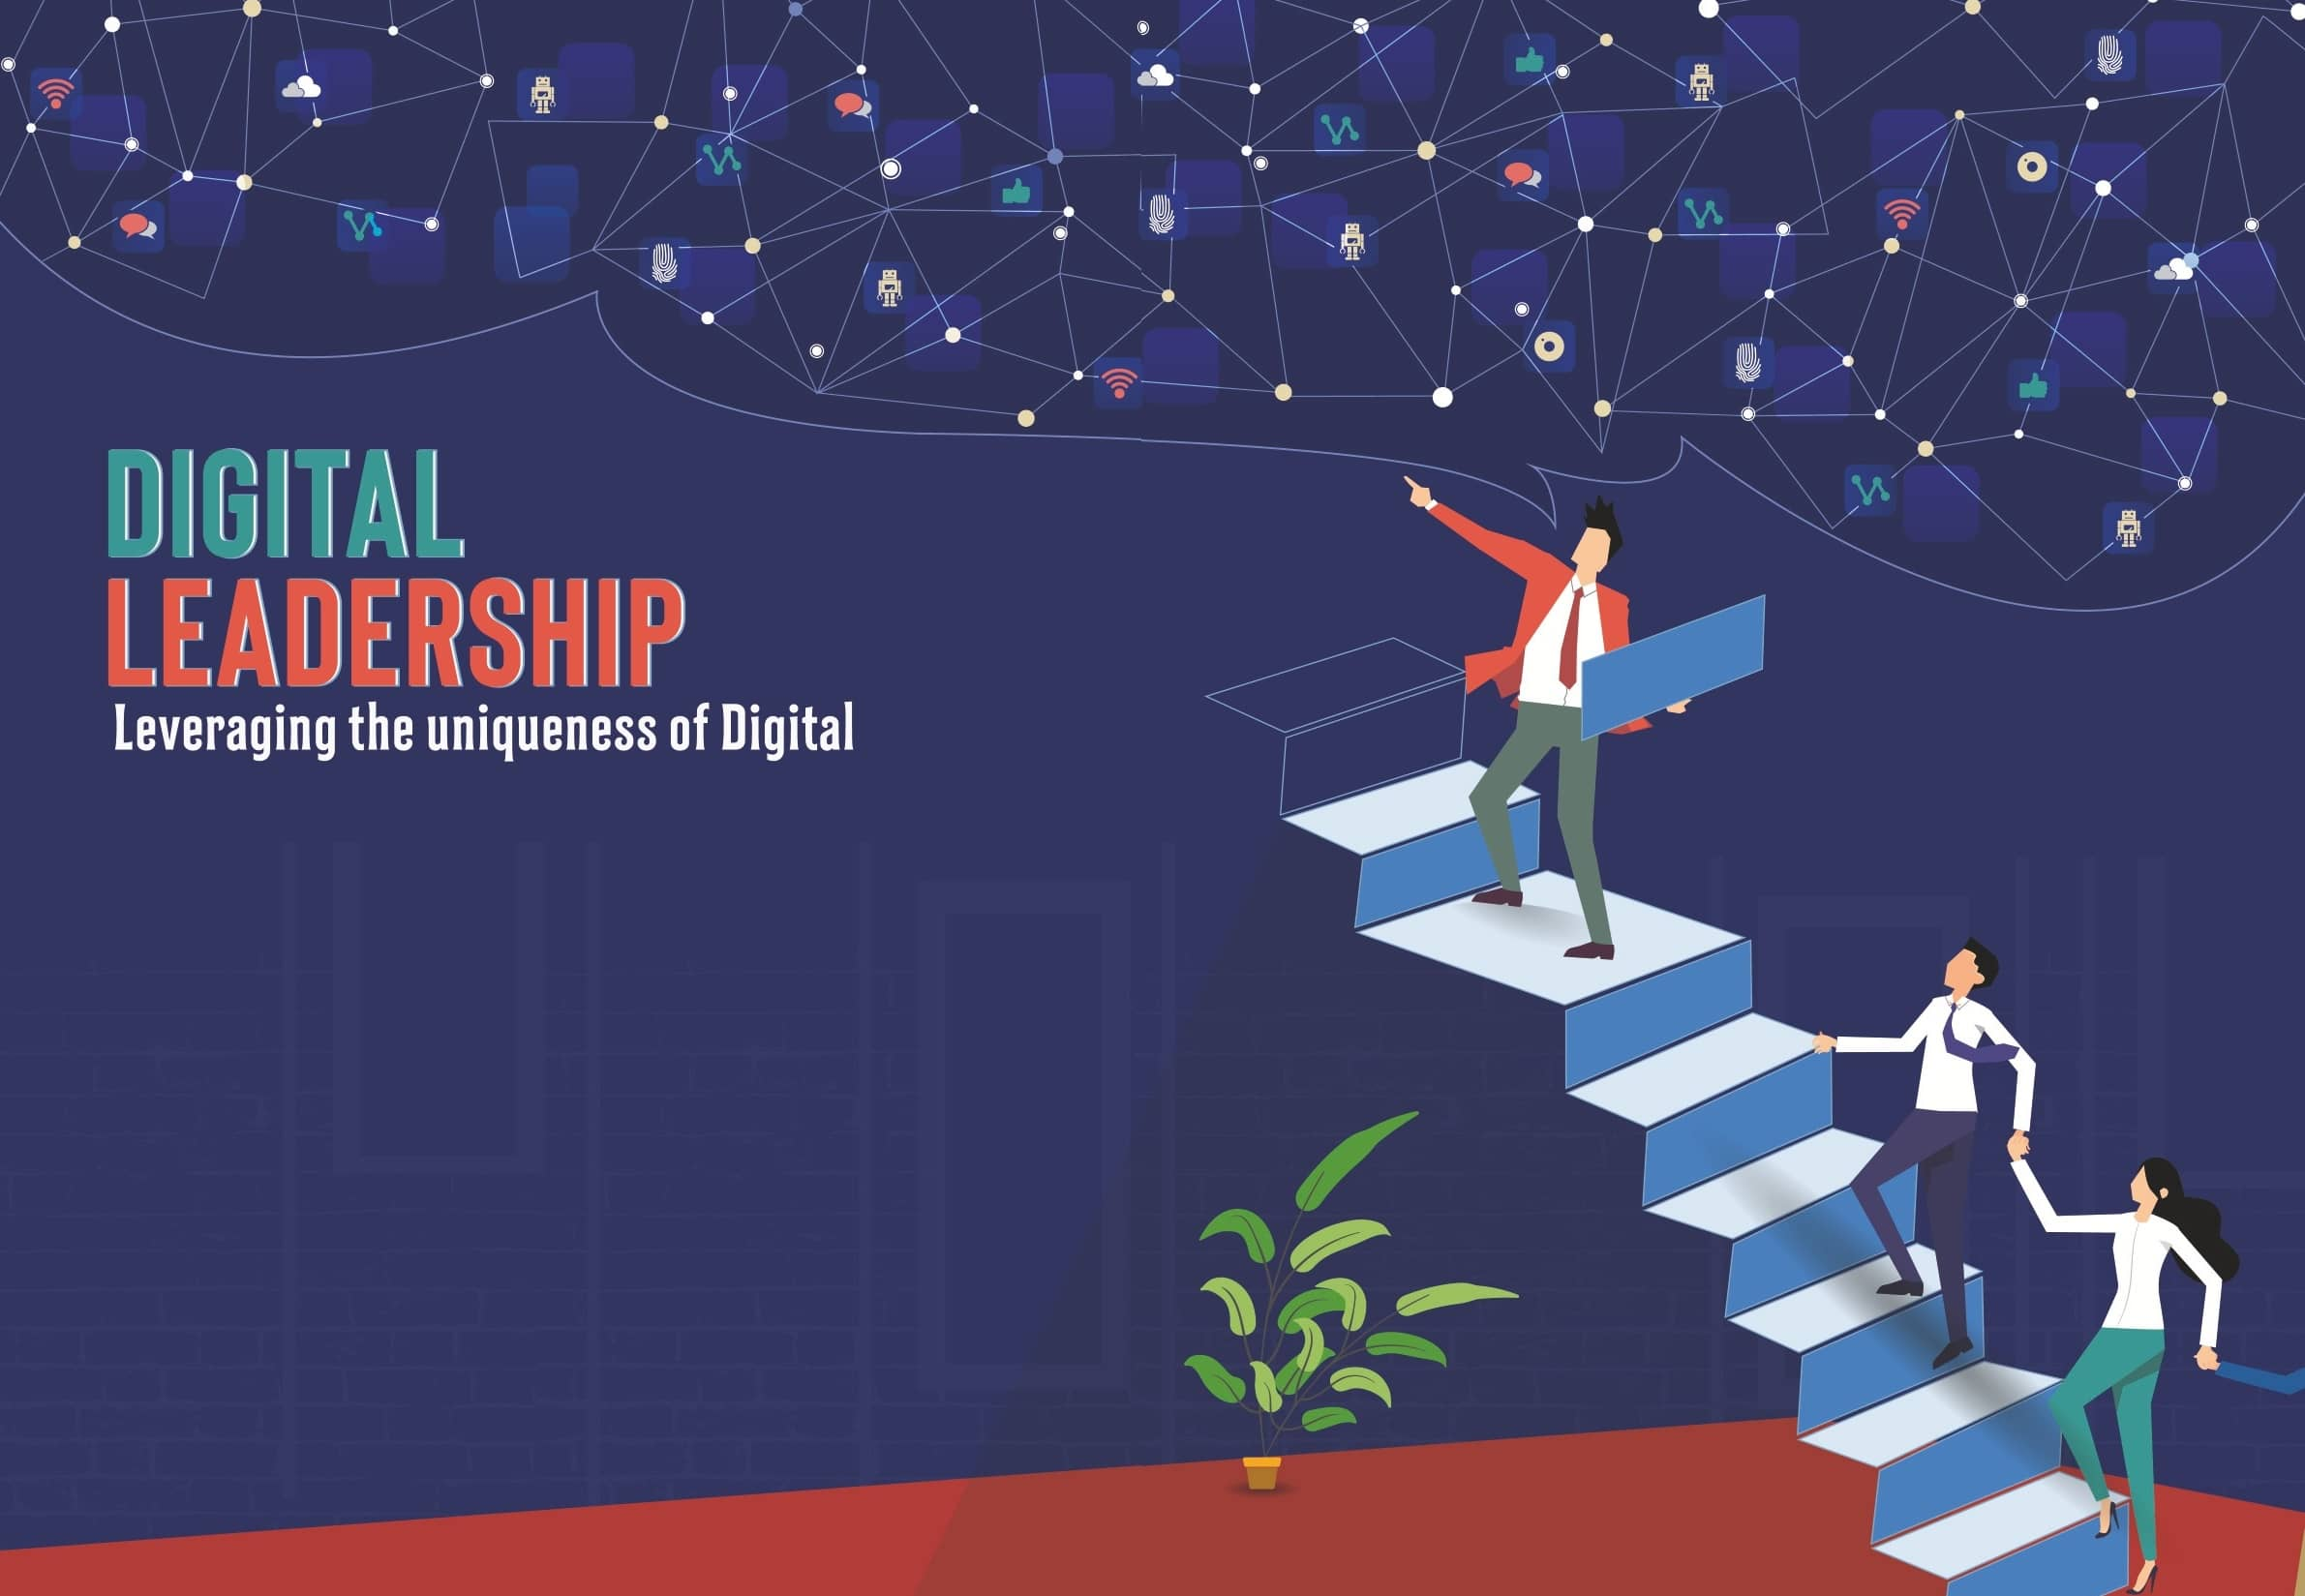 Digital Leadership - Leveraging The Uniqueness Of Digital